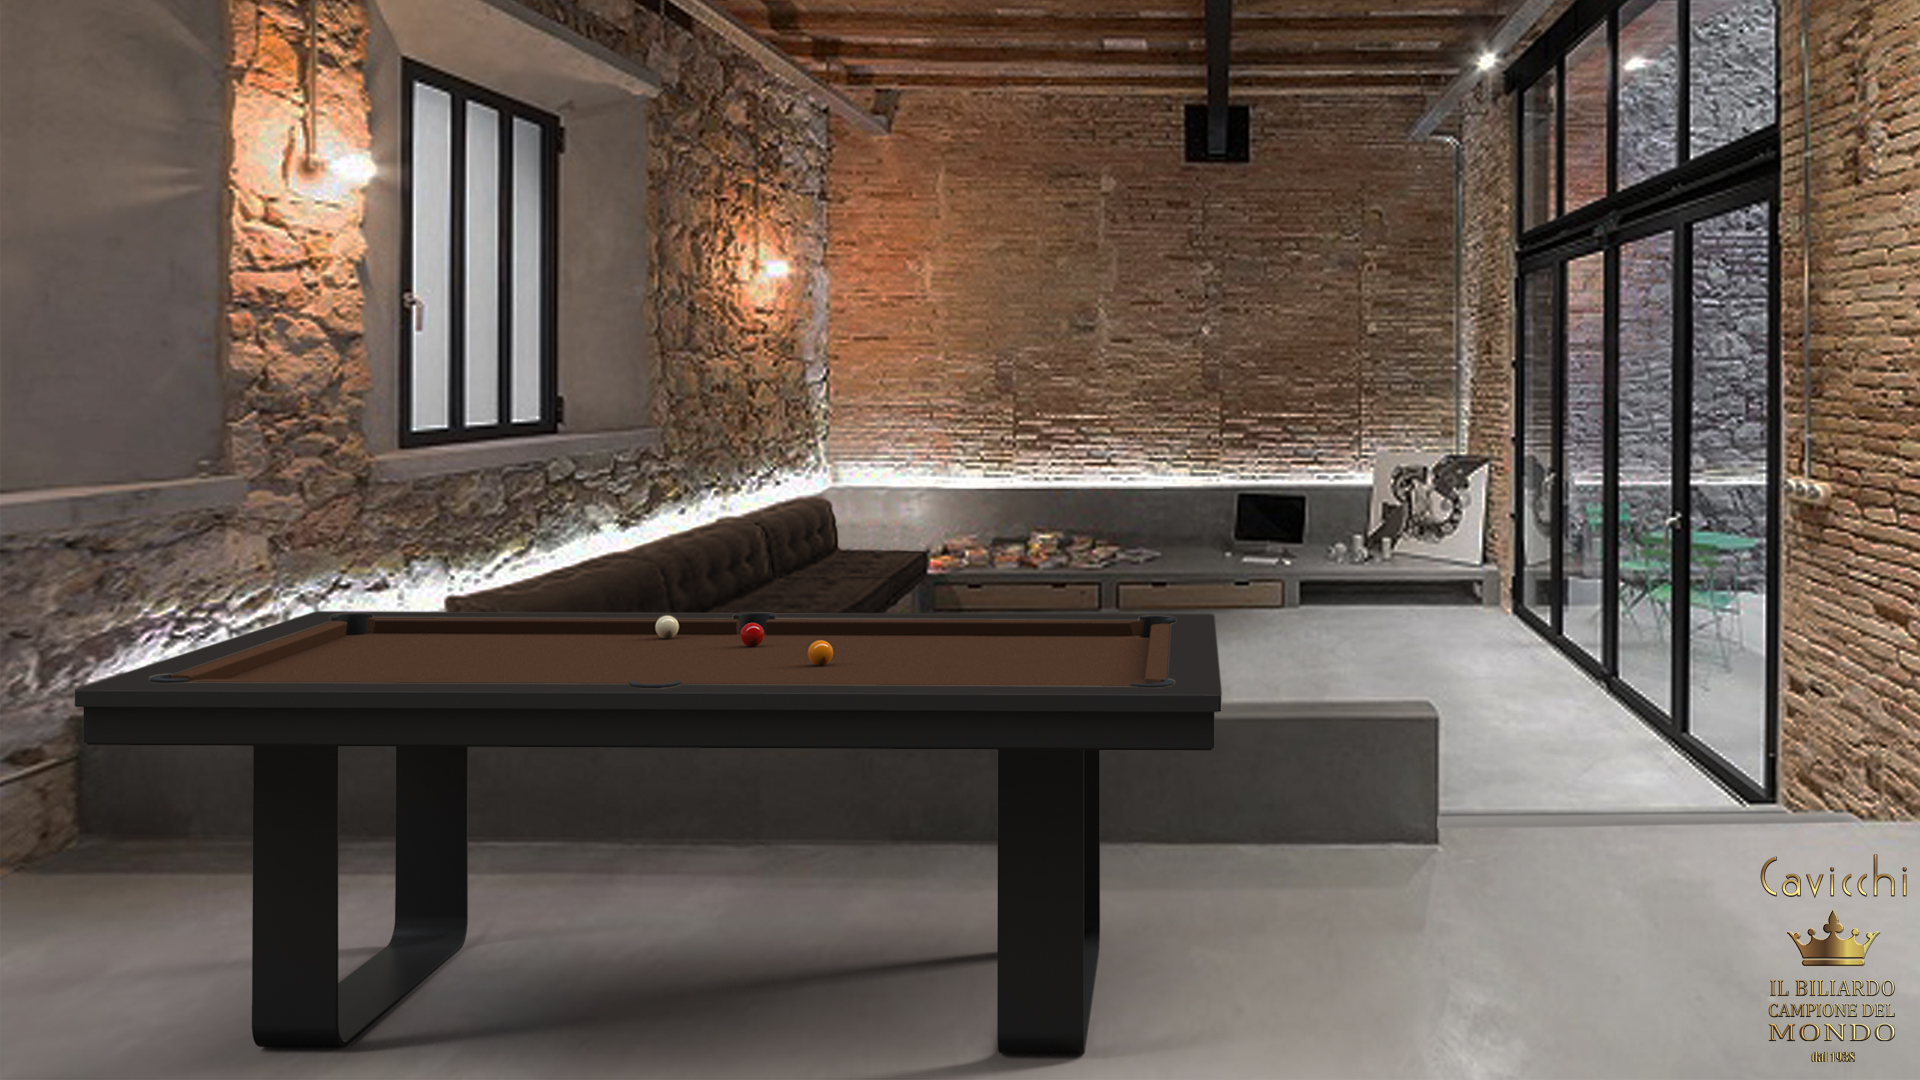 Cavicchi Mistral Black Pool Table 1